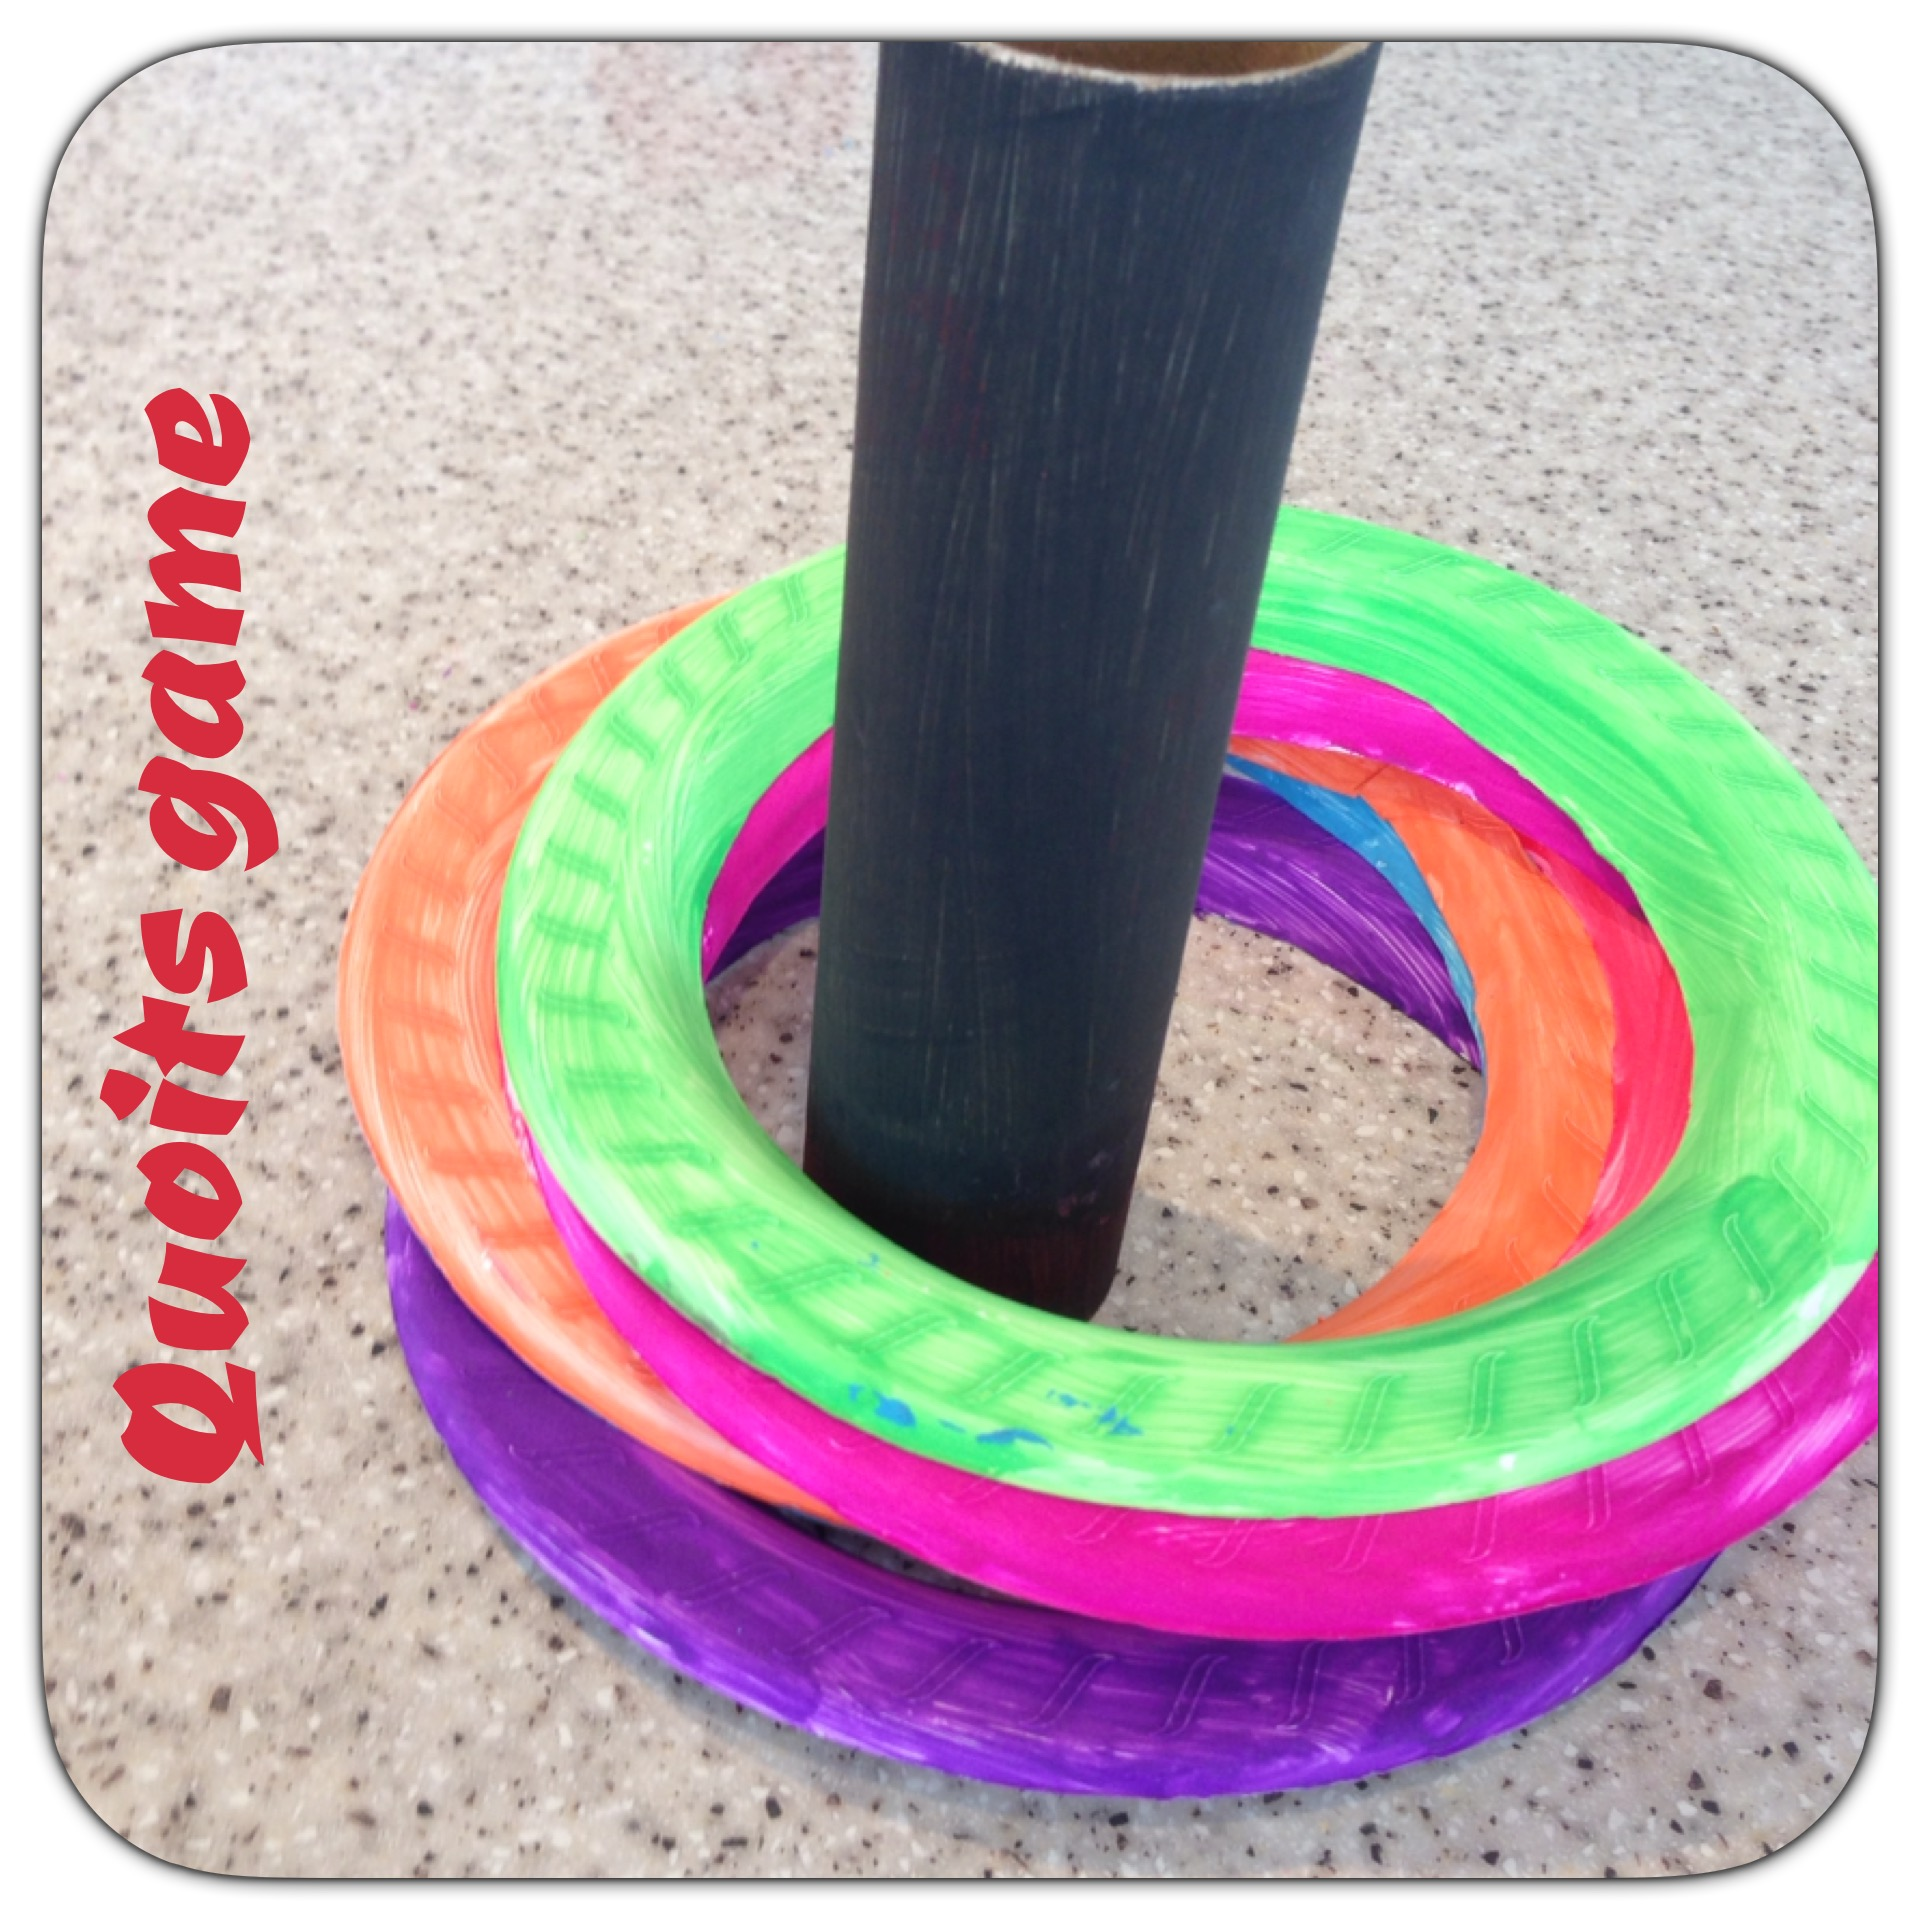 Quoits - Instructions1. Paint the inner cardboard tube from a packet of handi towels2. Cut out a small hole in a plastic plate (the size of the cardboard tube circumference) and glue the tube into the hole3. Cut the inner section out of several plastic plates4. Paint the outer circles different colors 5. Have different distances to stand behind and throw the quoits, getting different points - can play inside aswell